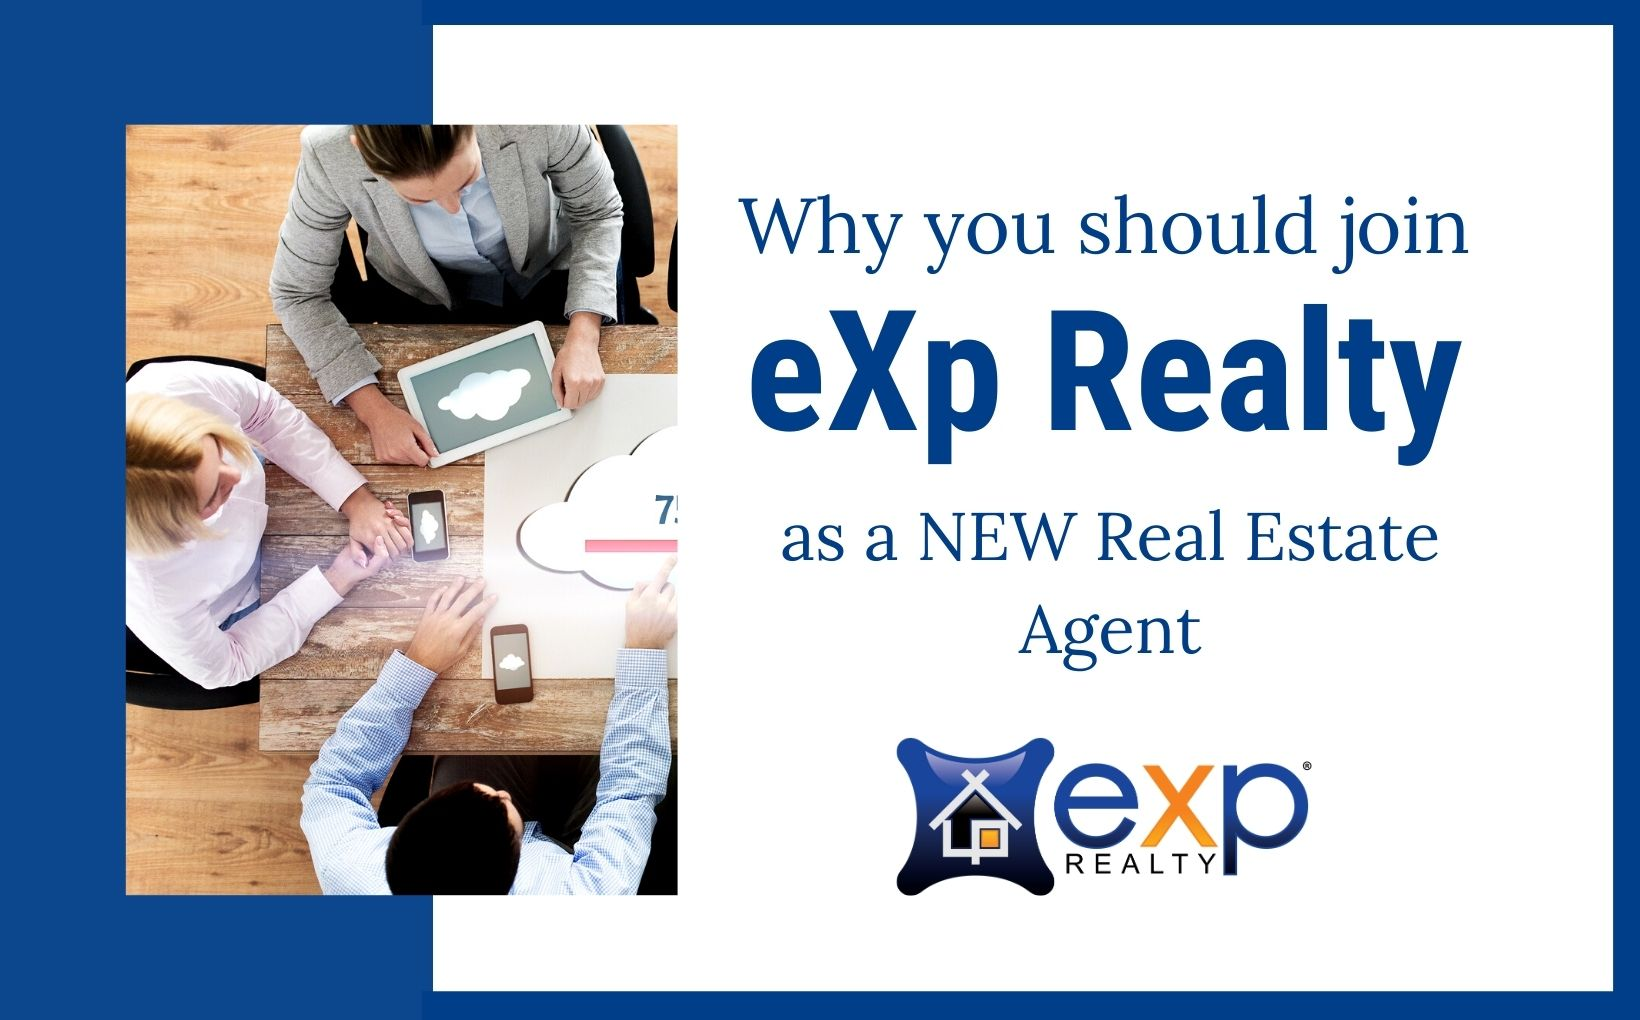 why should I join eXp Realty as a new real estate agent blog post